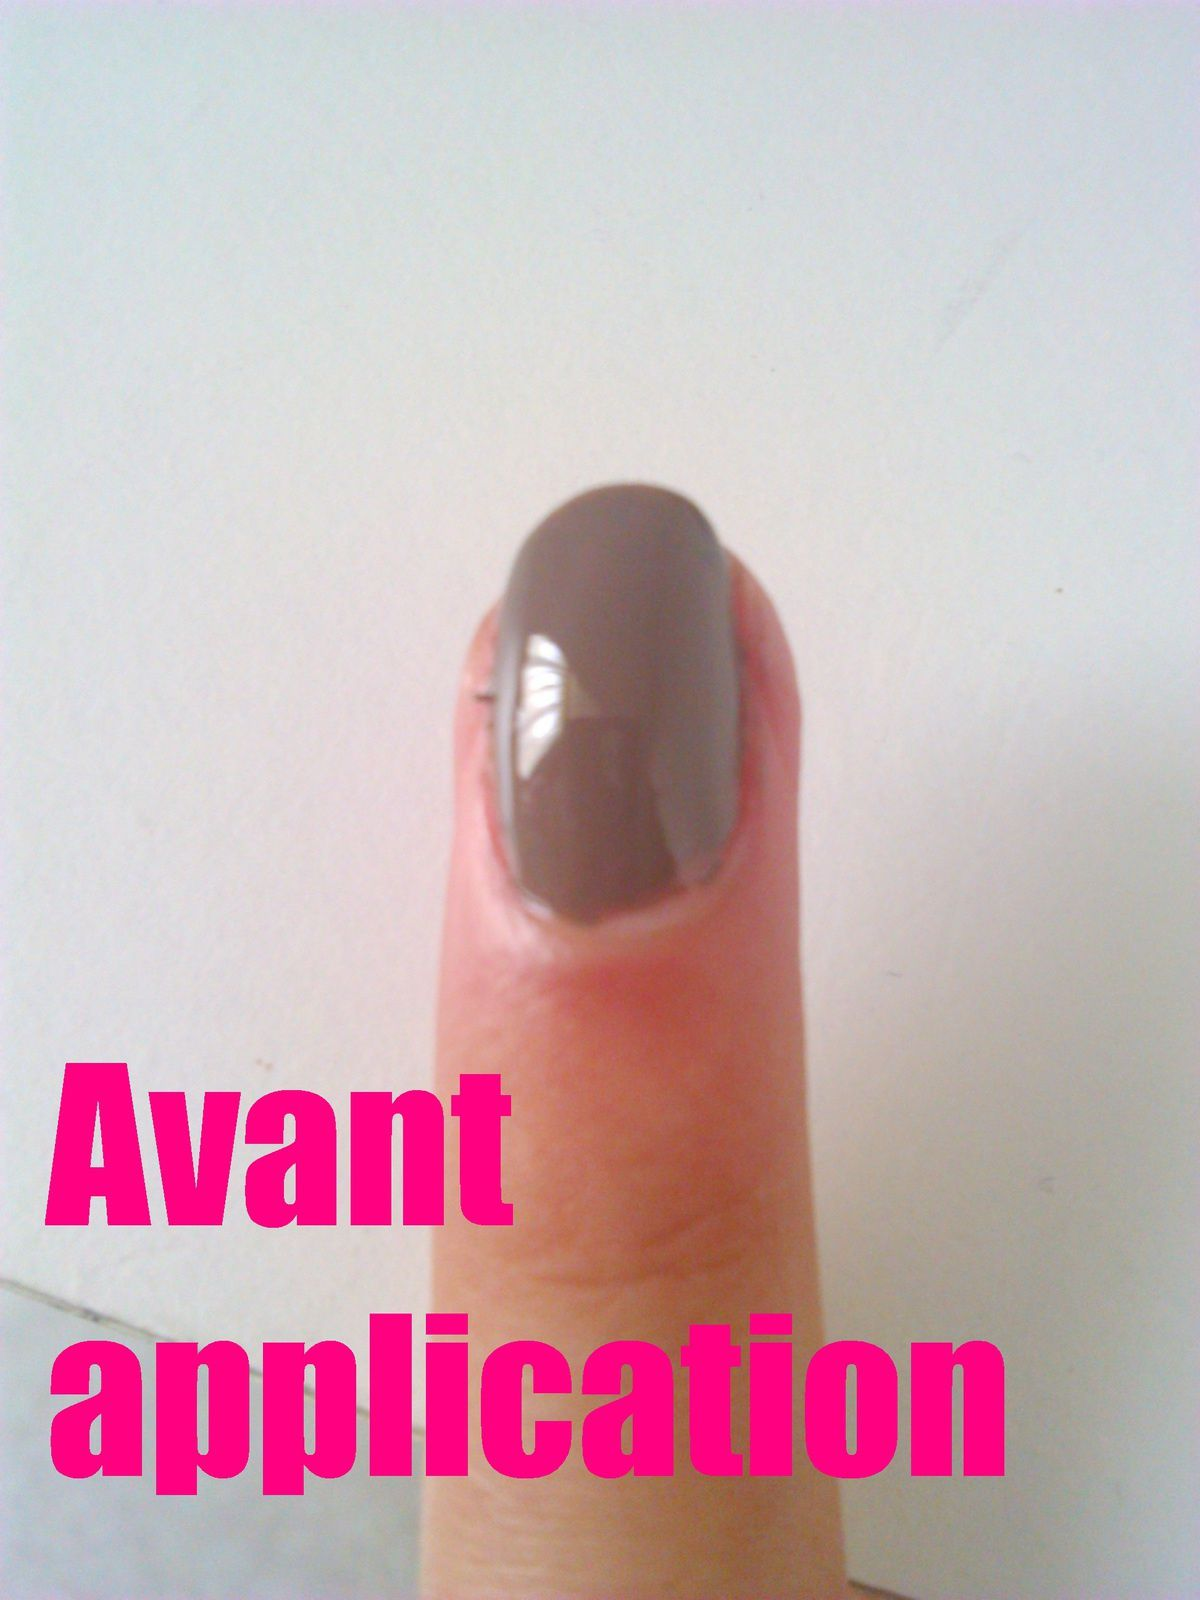 Avant application